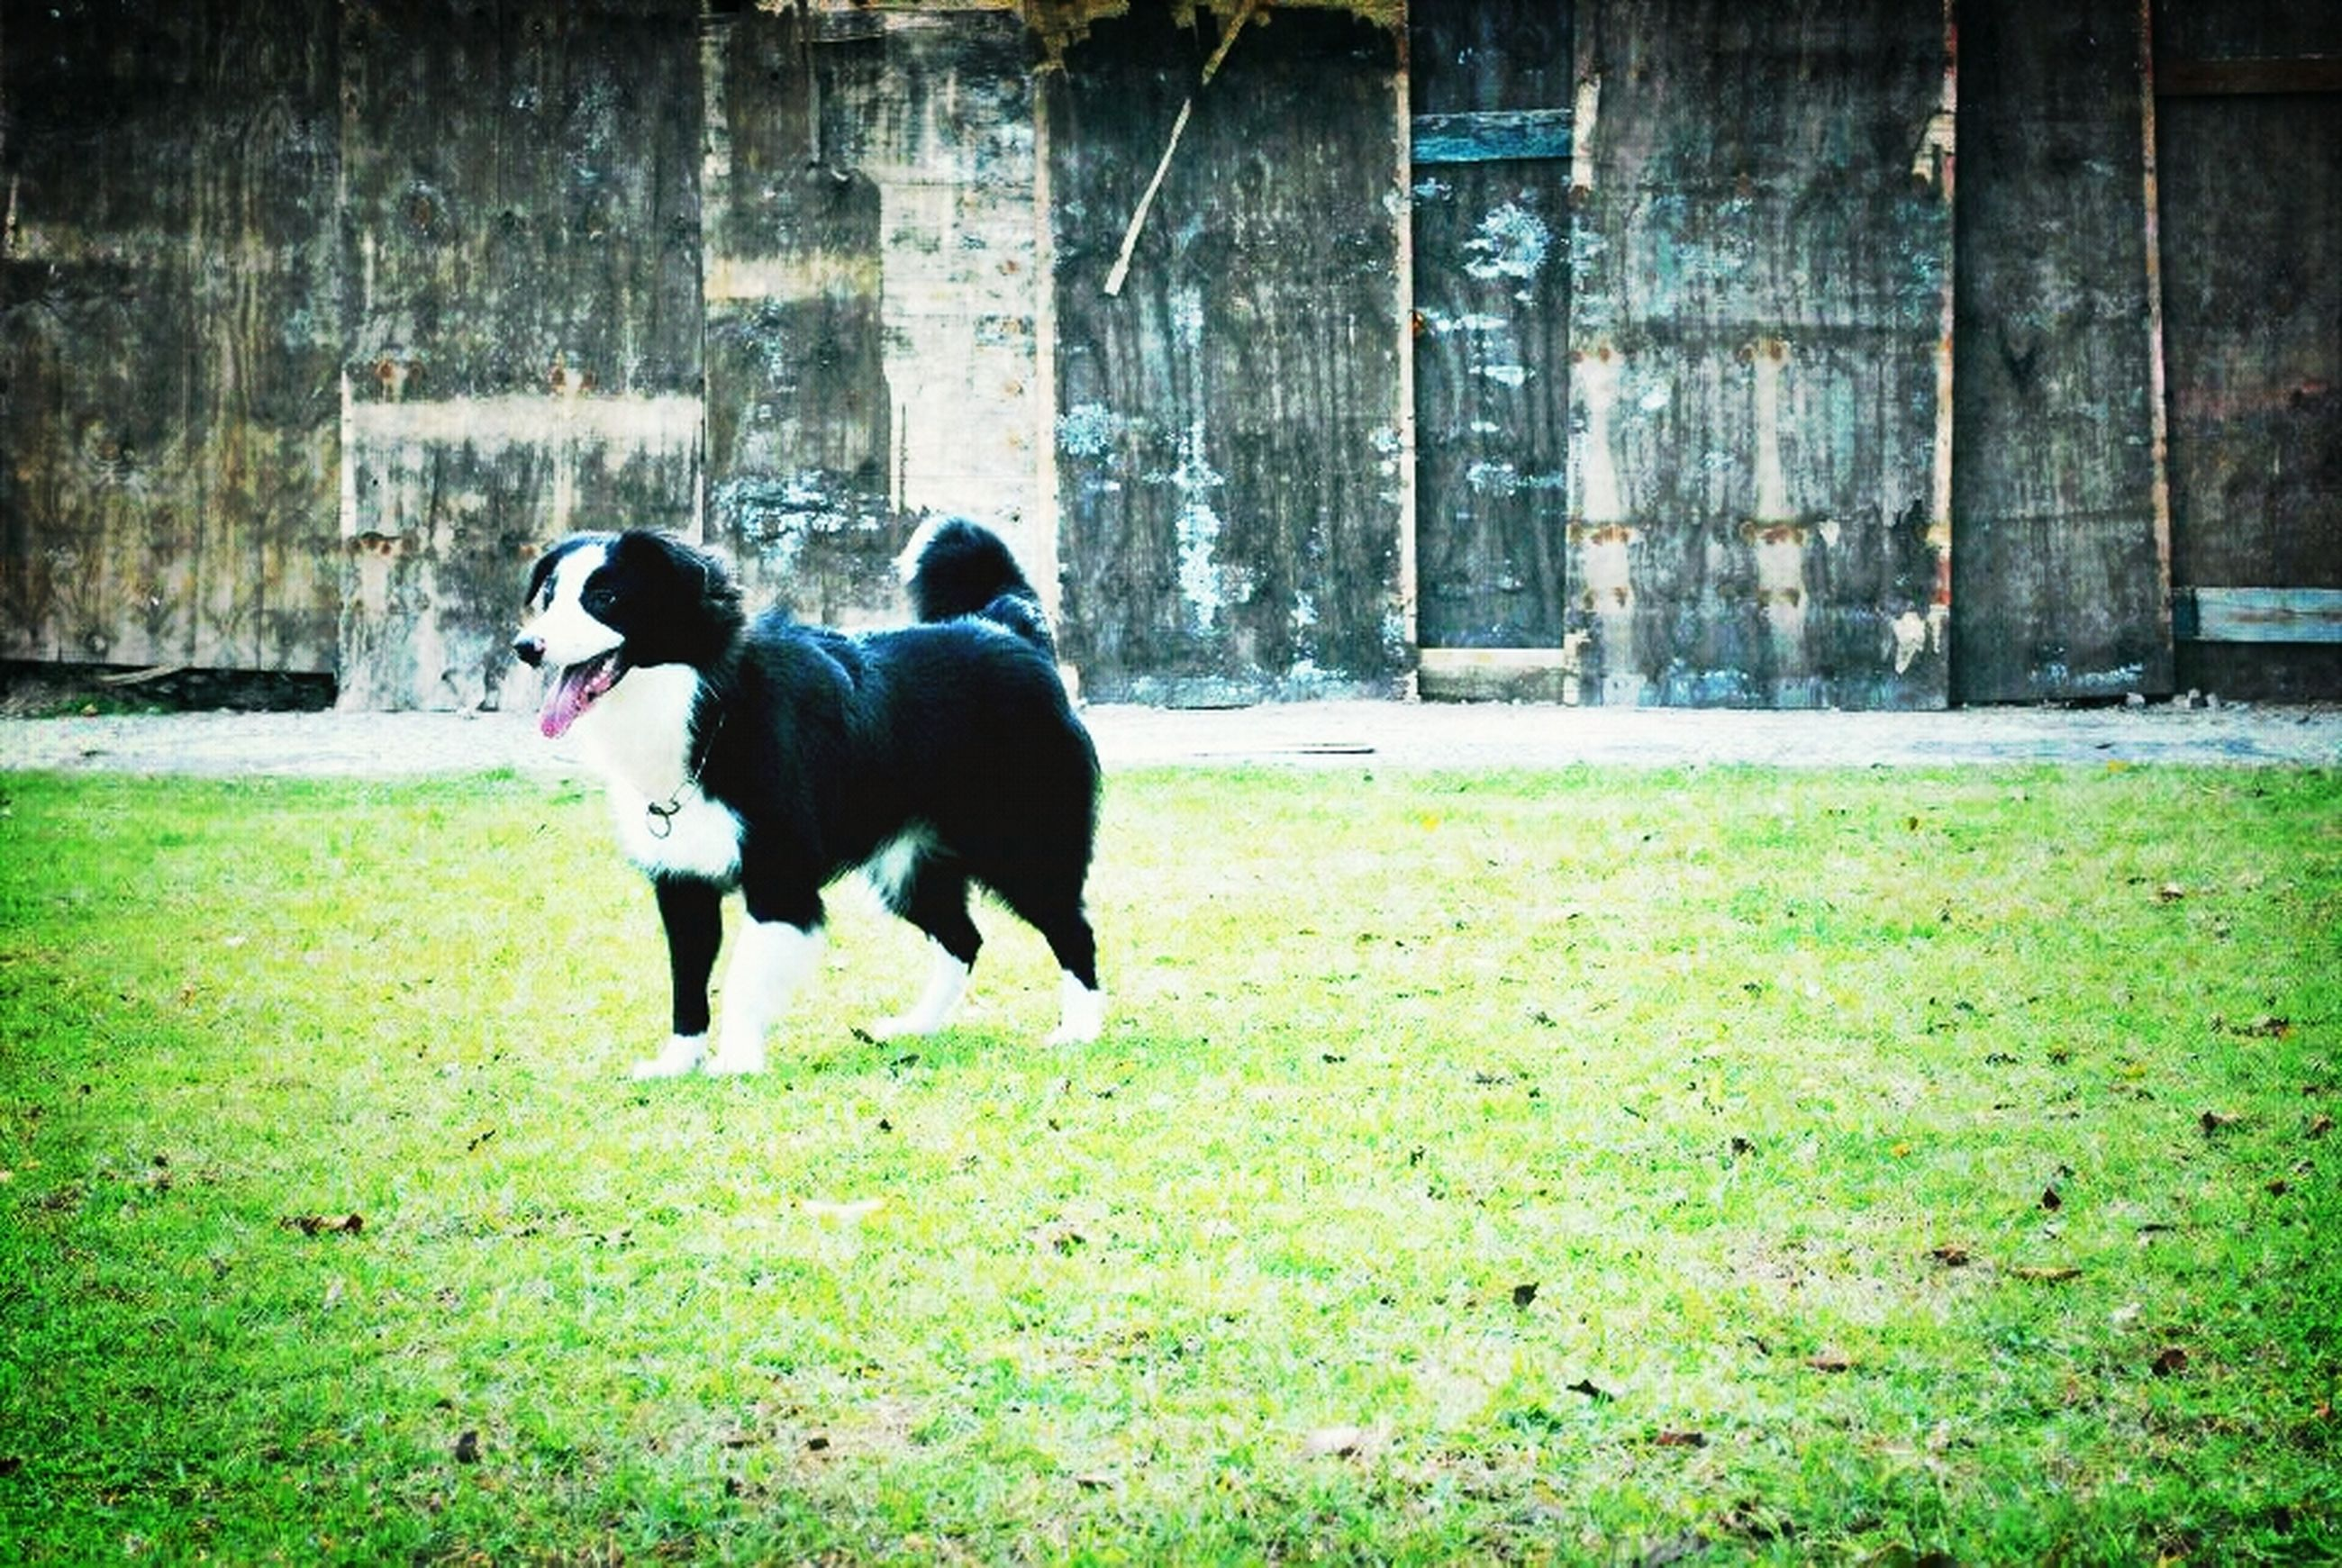 grass, domestic animals, dog, one animal, animal themes, pets, mammal, building exterior, full length, built structure, field, architecture, grassy, black color, standing, green color, day, lawn, outdoors, house